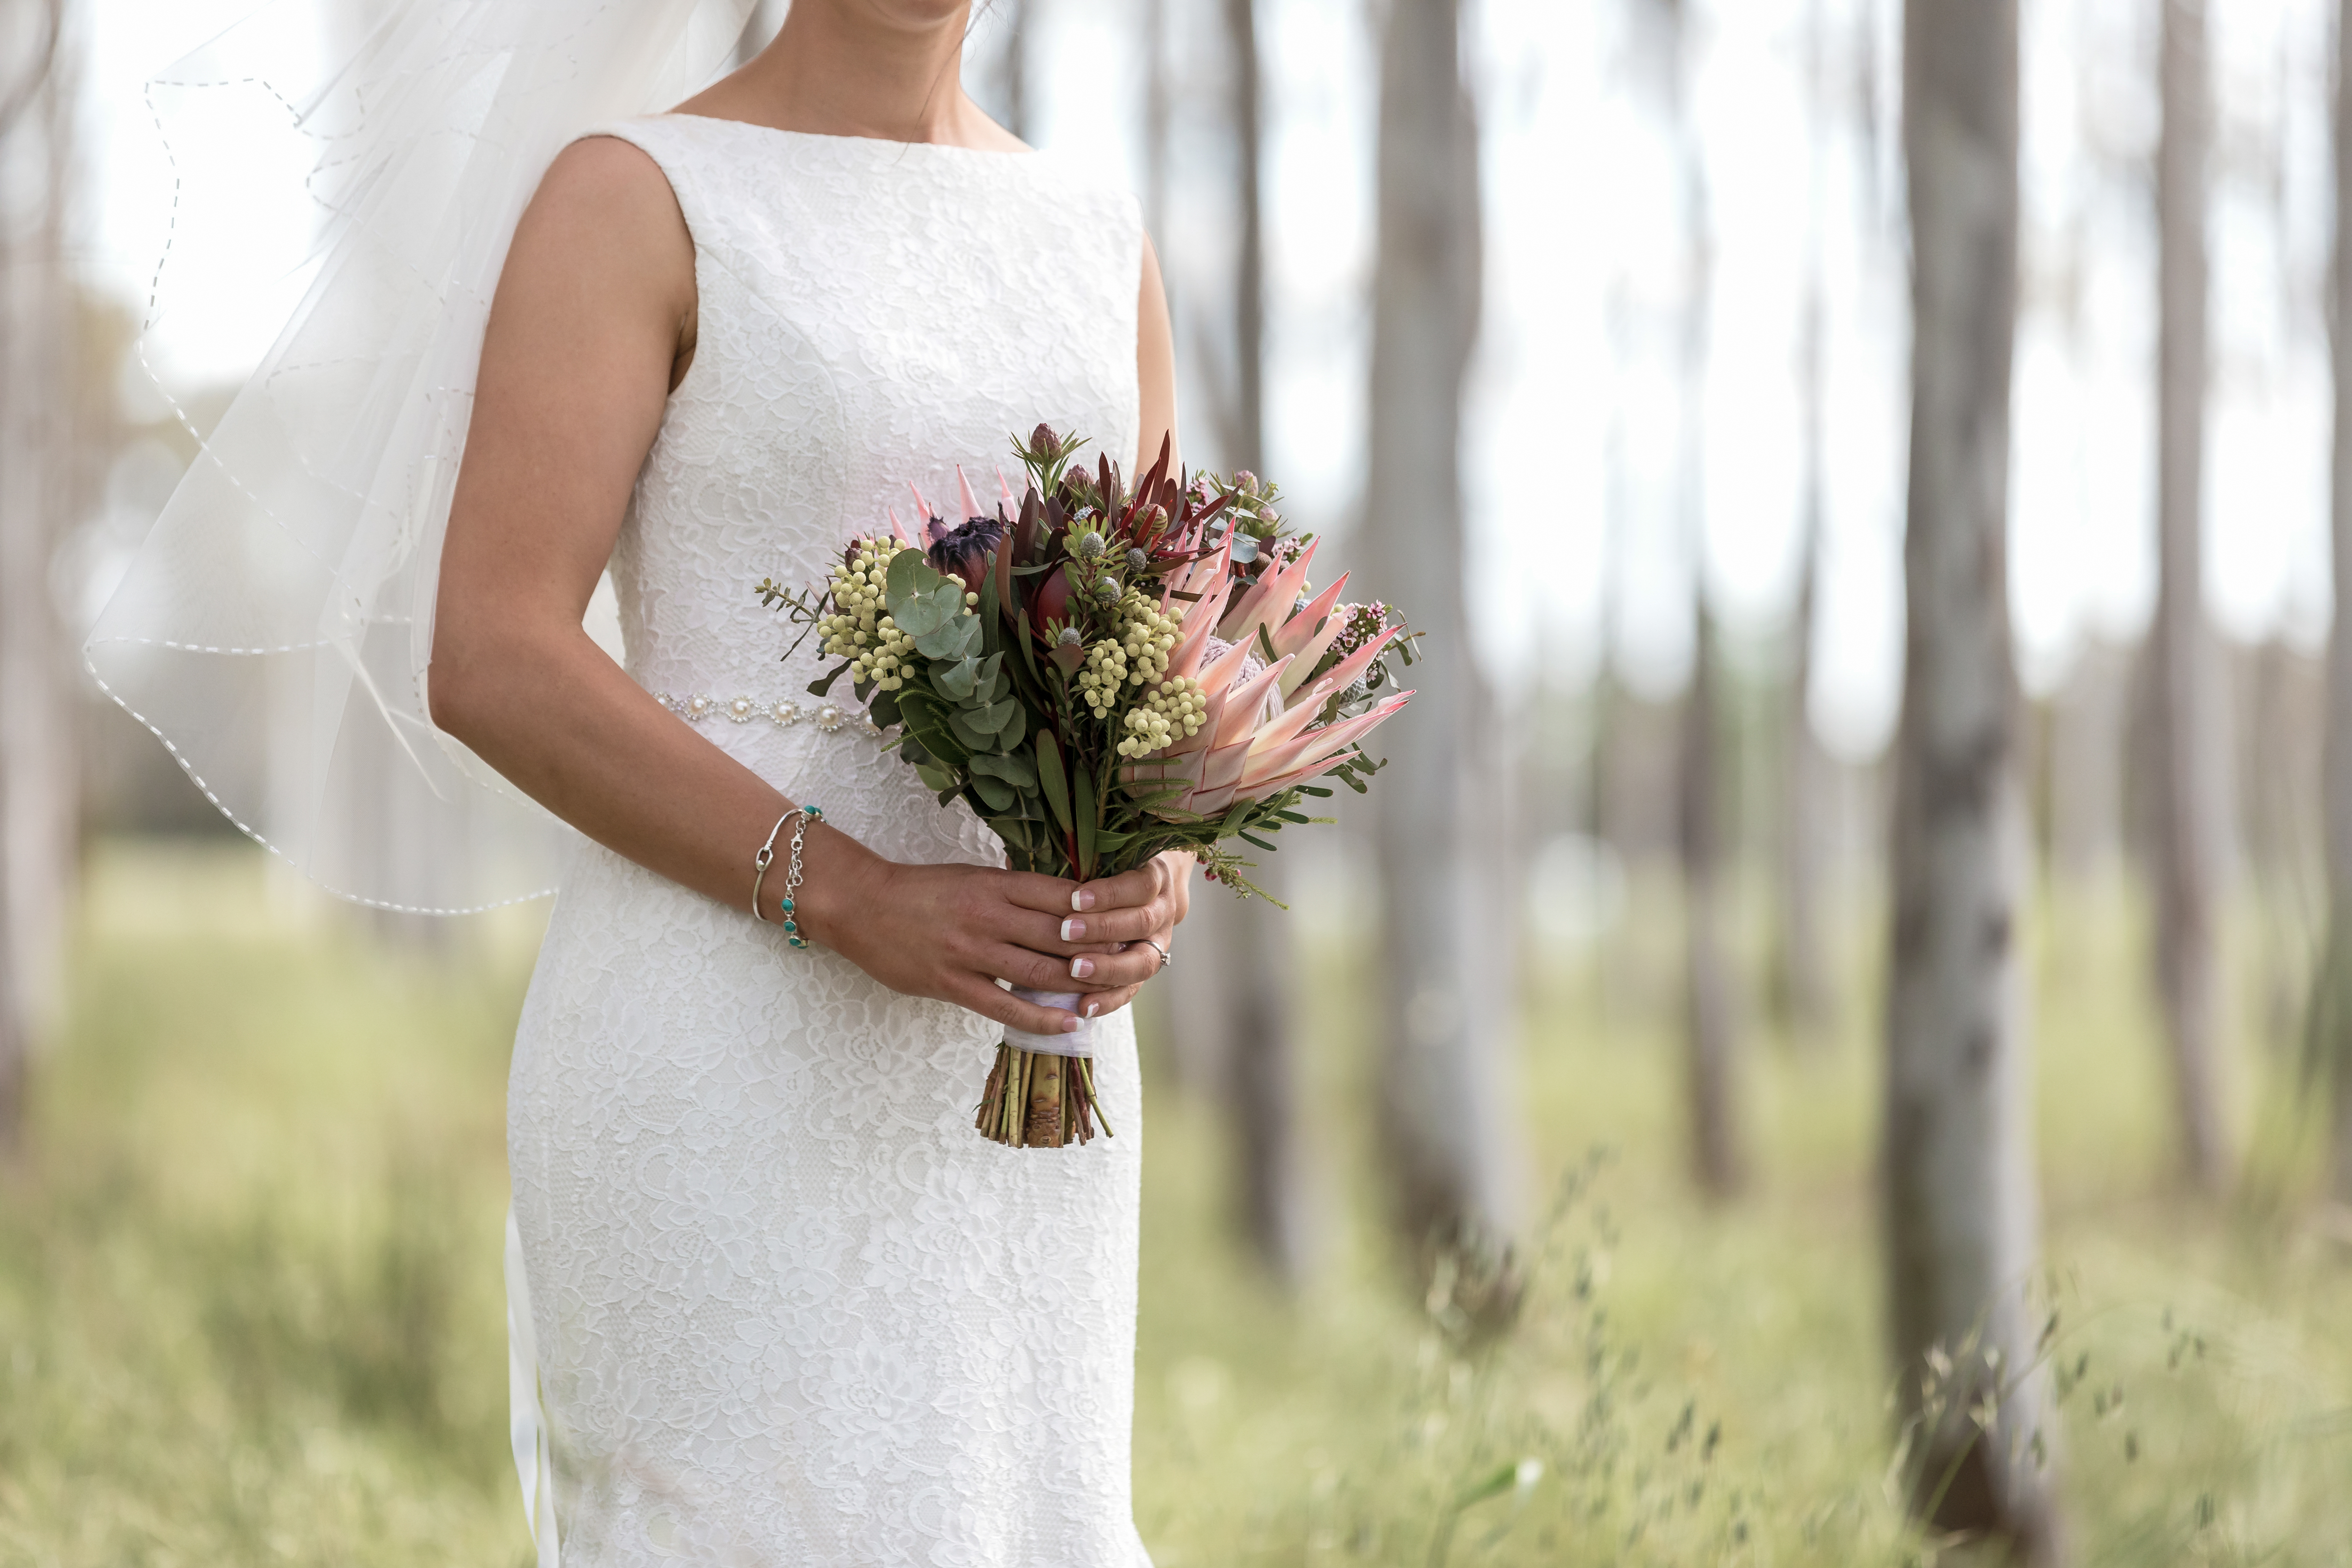 Bride in lace gown holding native flowers